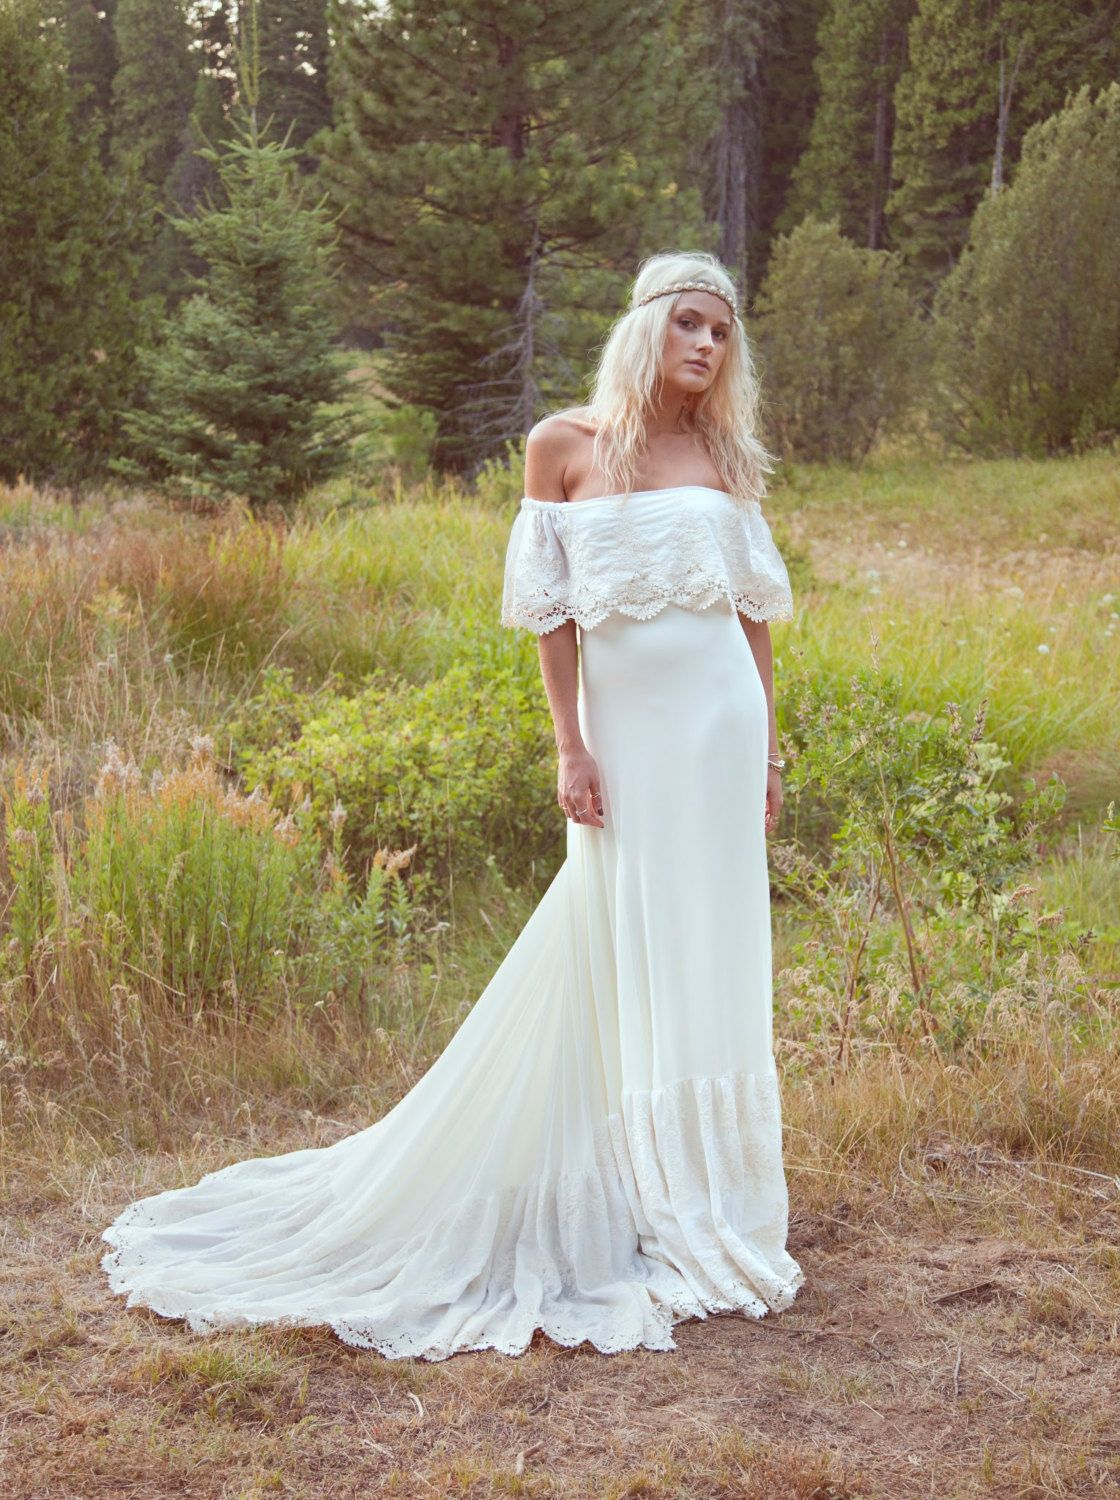 Are Hippie Wedding Dresses the Same as Bohemian Wedding ...